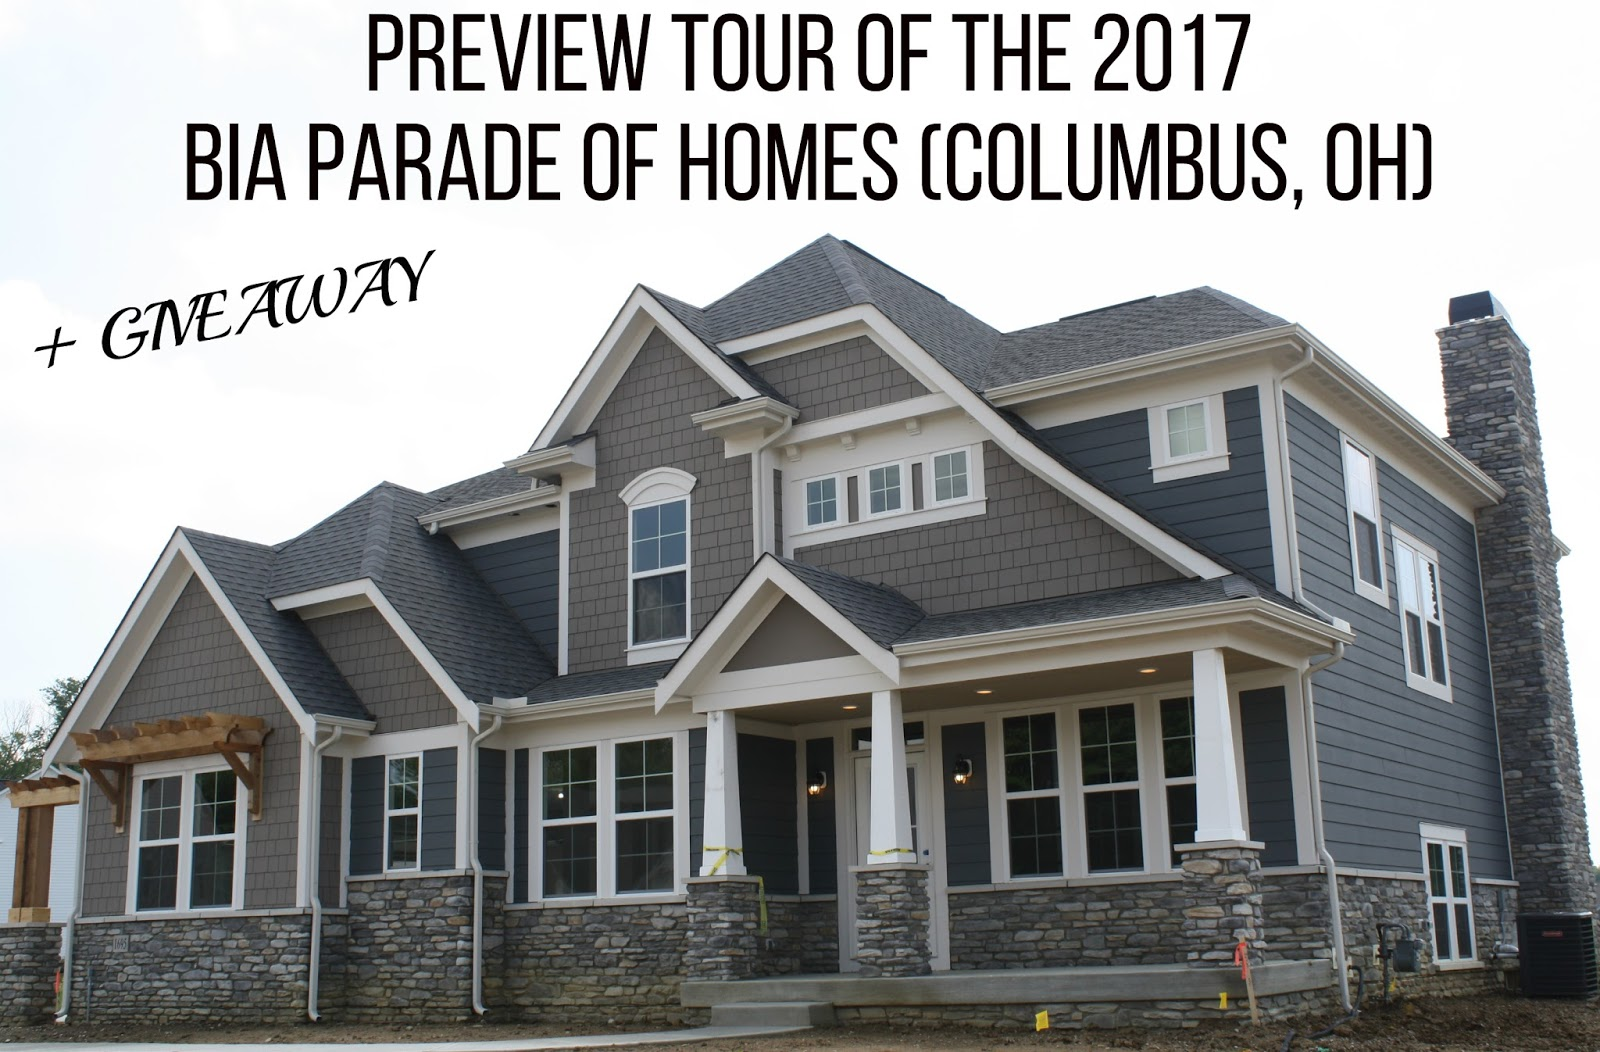 Bg by christina lifestyle preview tour of the 2017 bia for Central ohio home builders